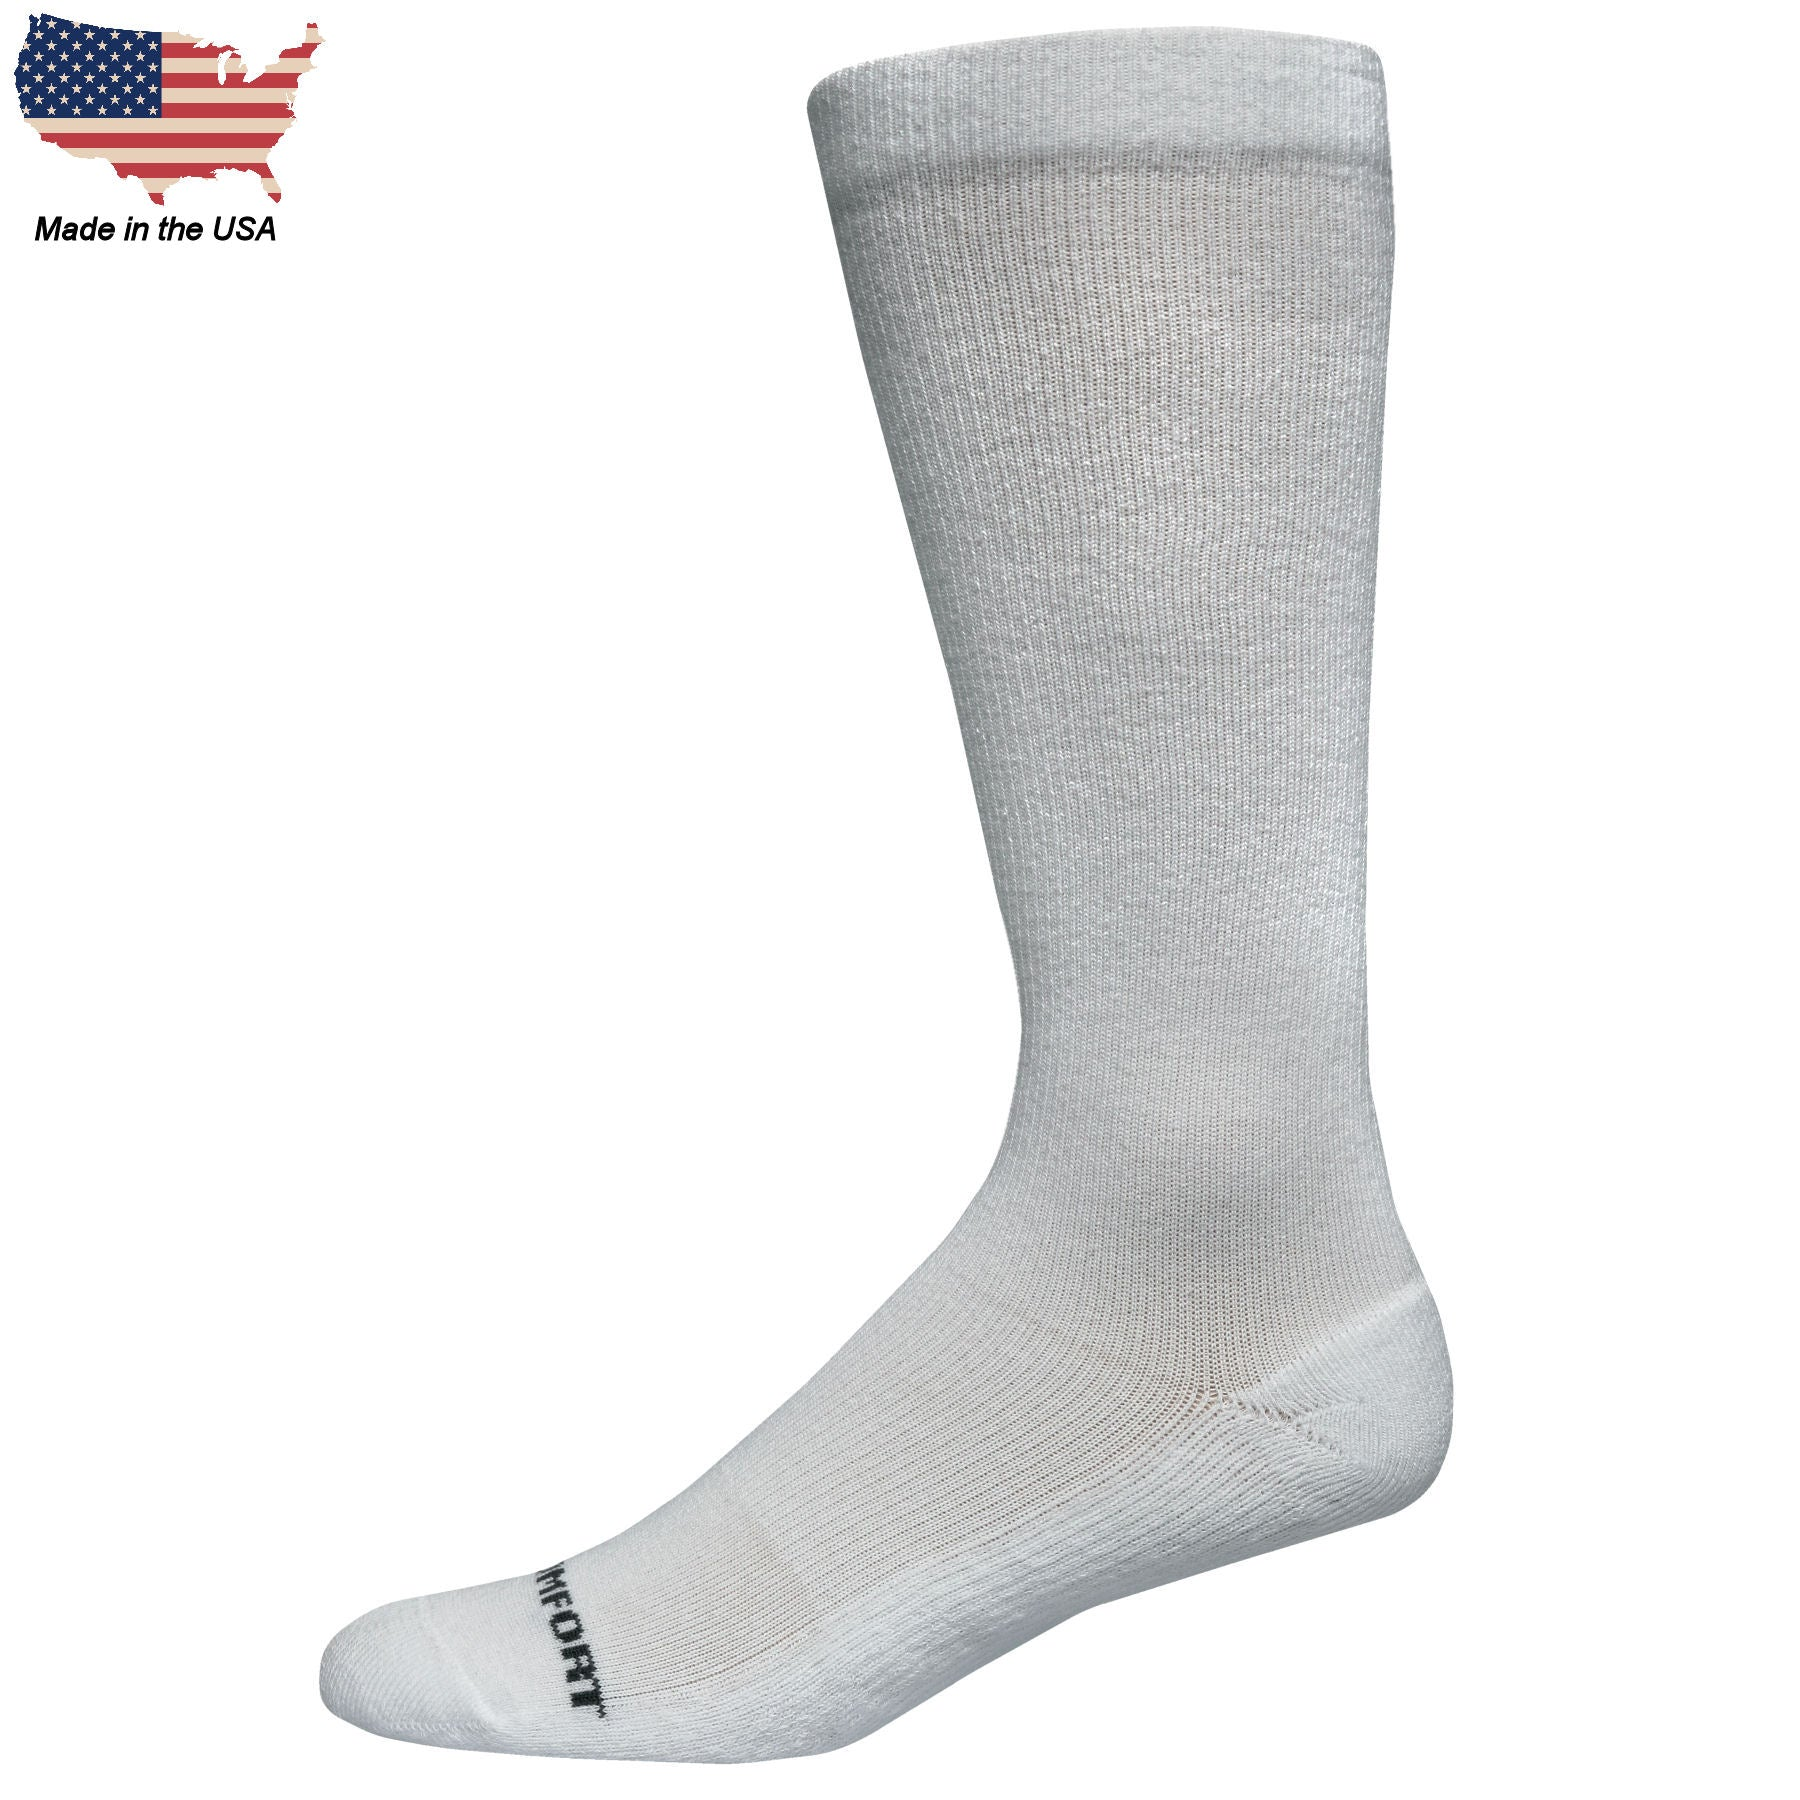 Foot Comfort Recover Graduated Compression White OTC Socks